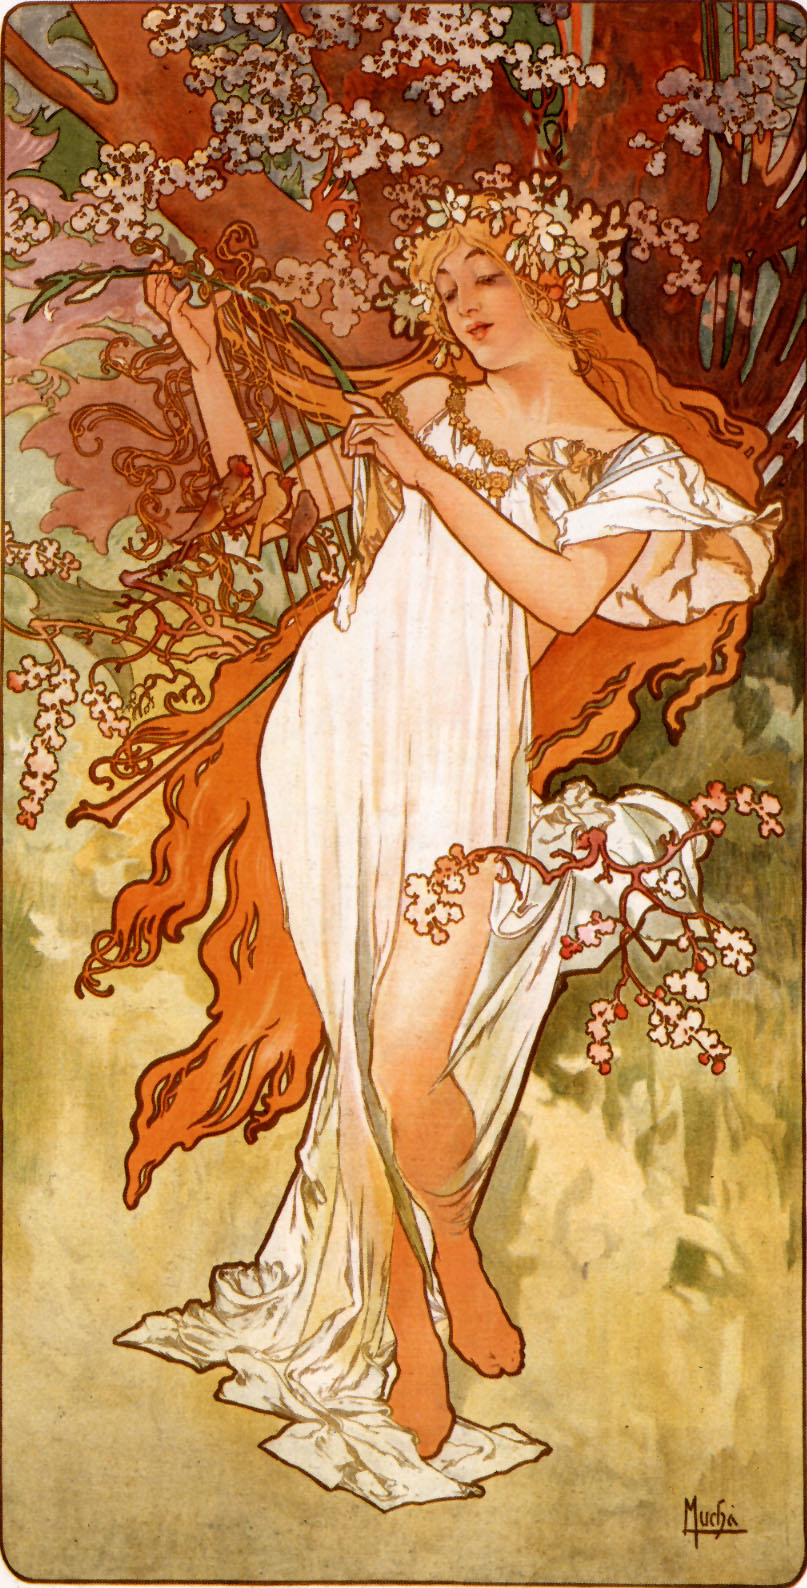 Graphic Design Research: The Big Deal About Alphonse Mucha